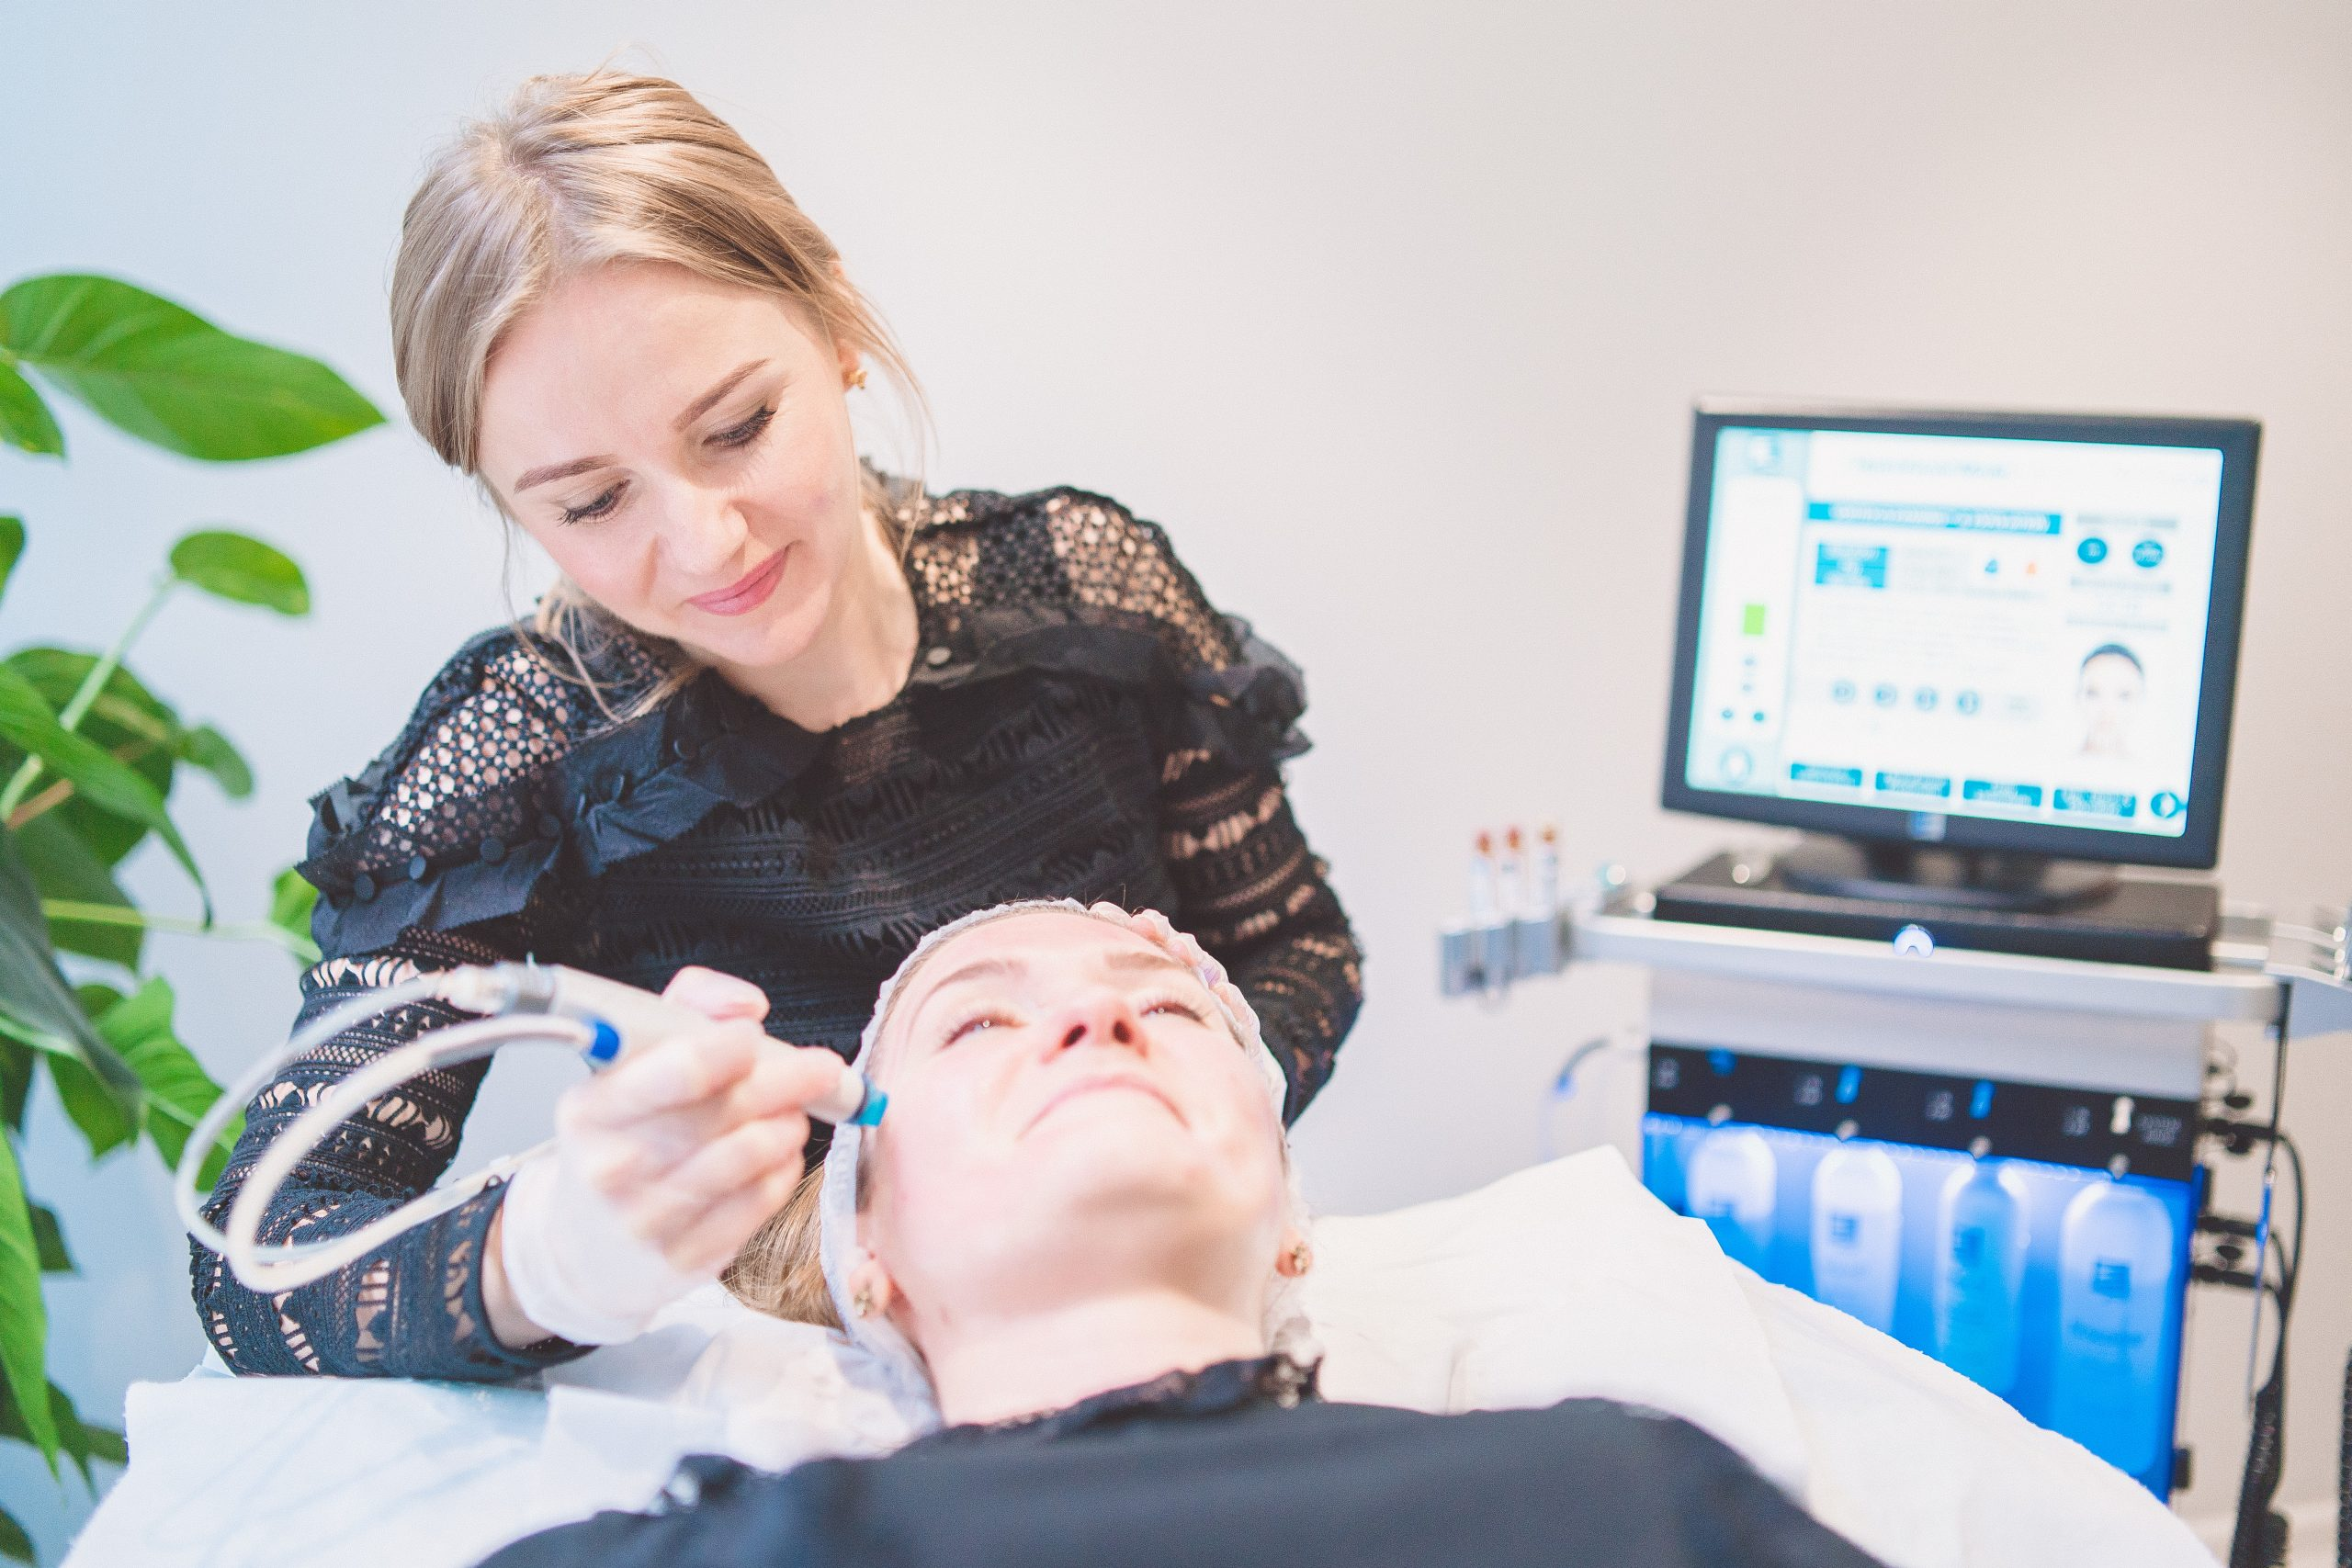 Female Practitioner performing HydraFacial on Woman